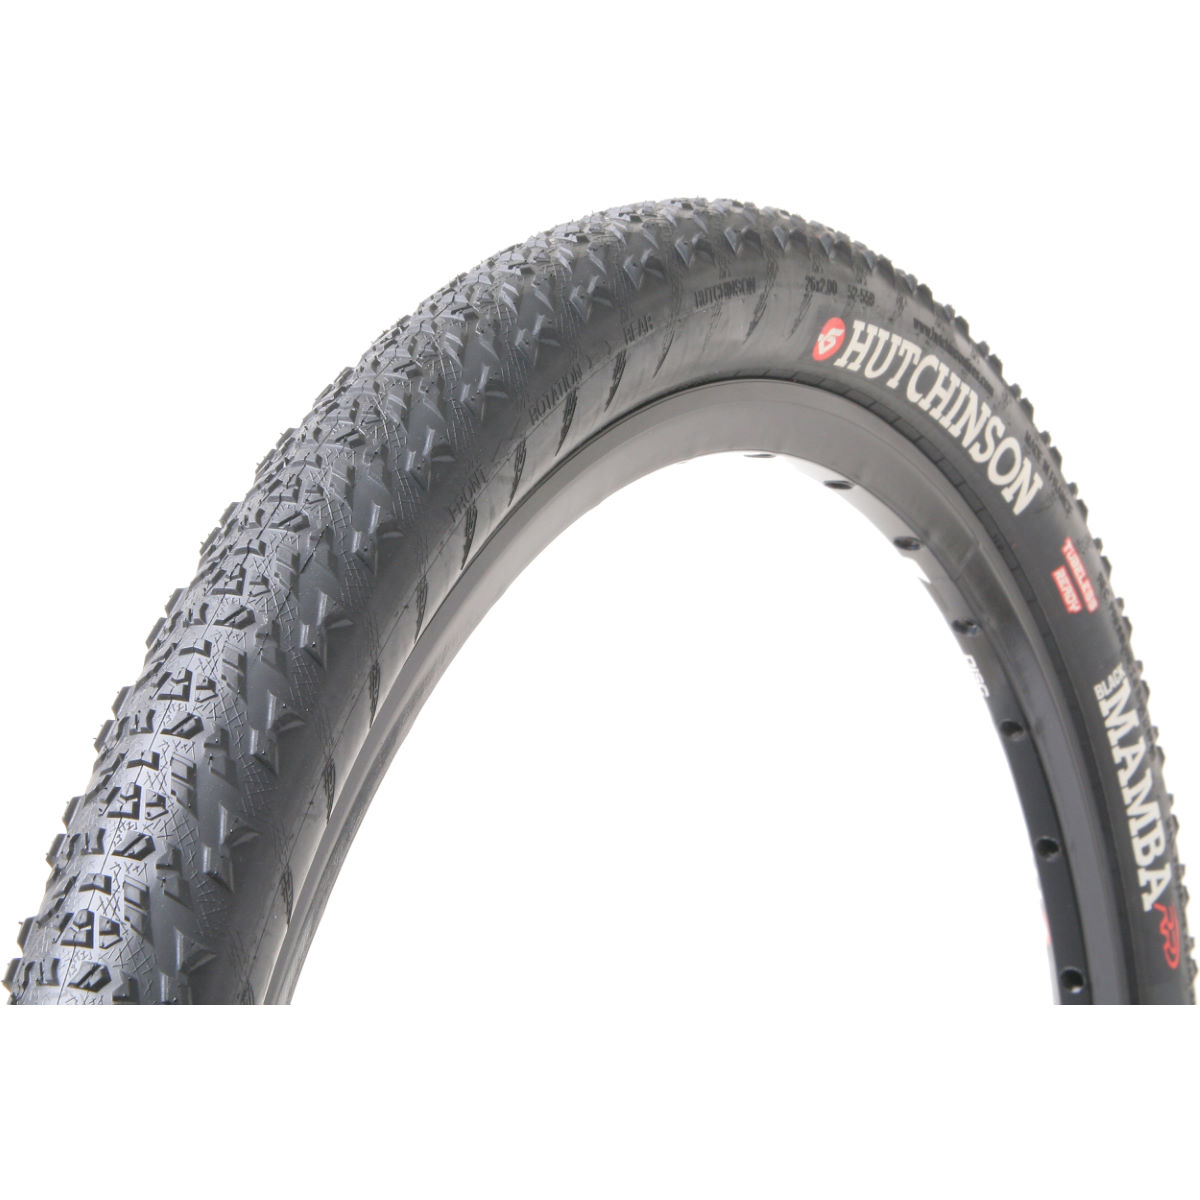 Pneu de cyclo-cross Hutchinson Black Mamba (souple) - 700 x 34c Noir